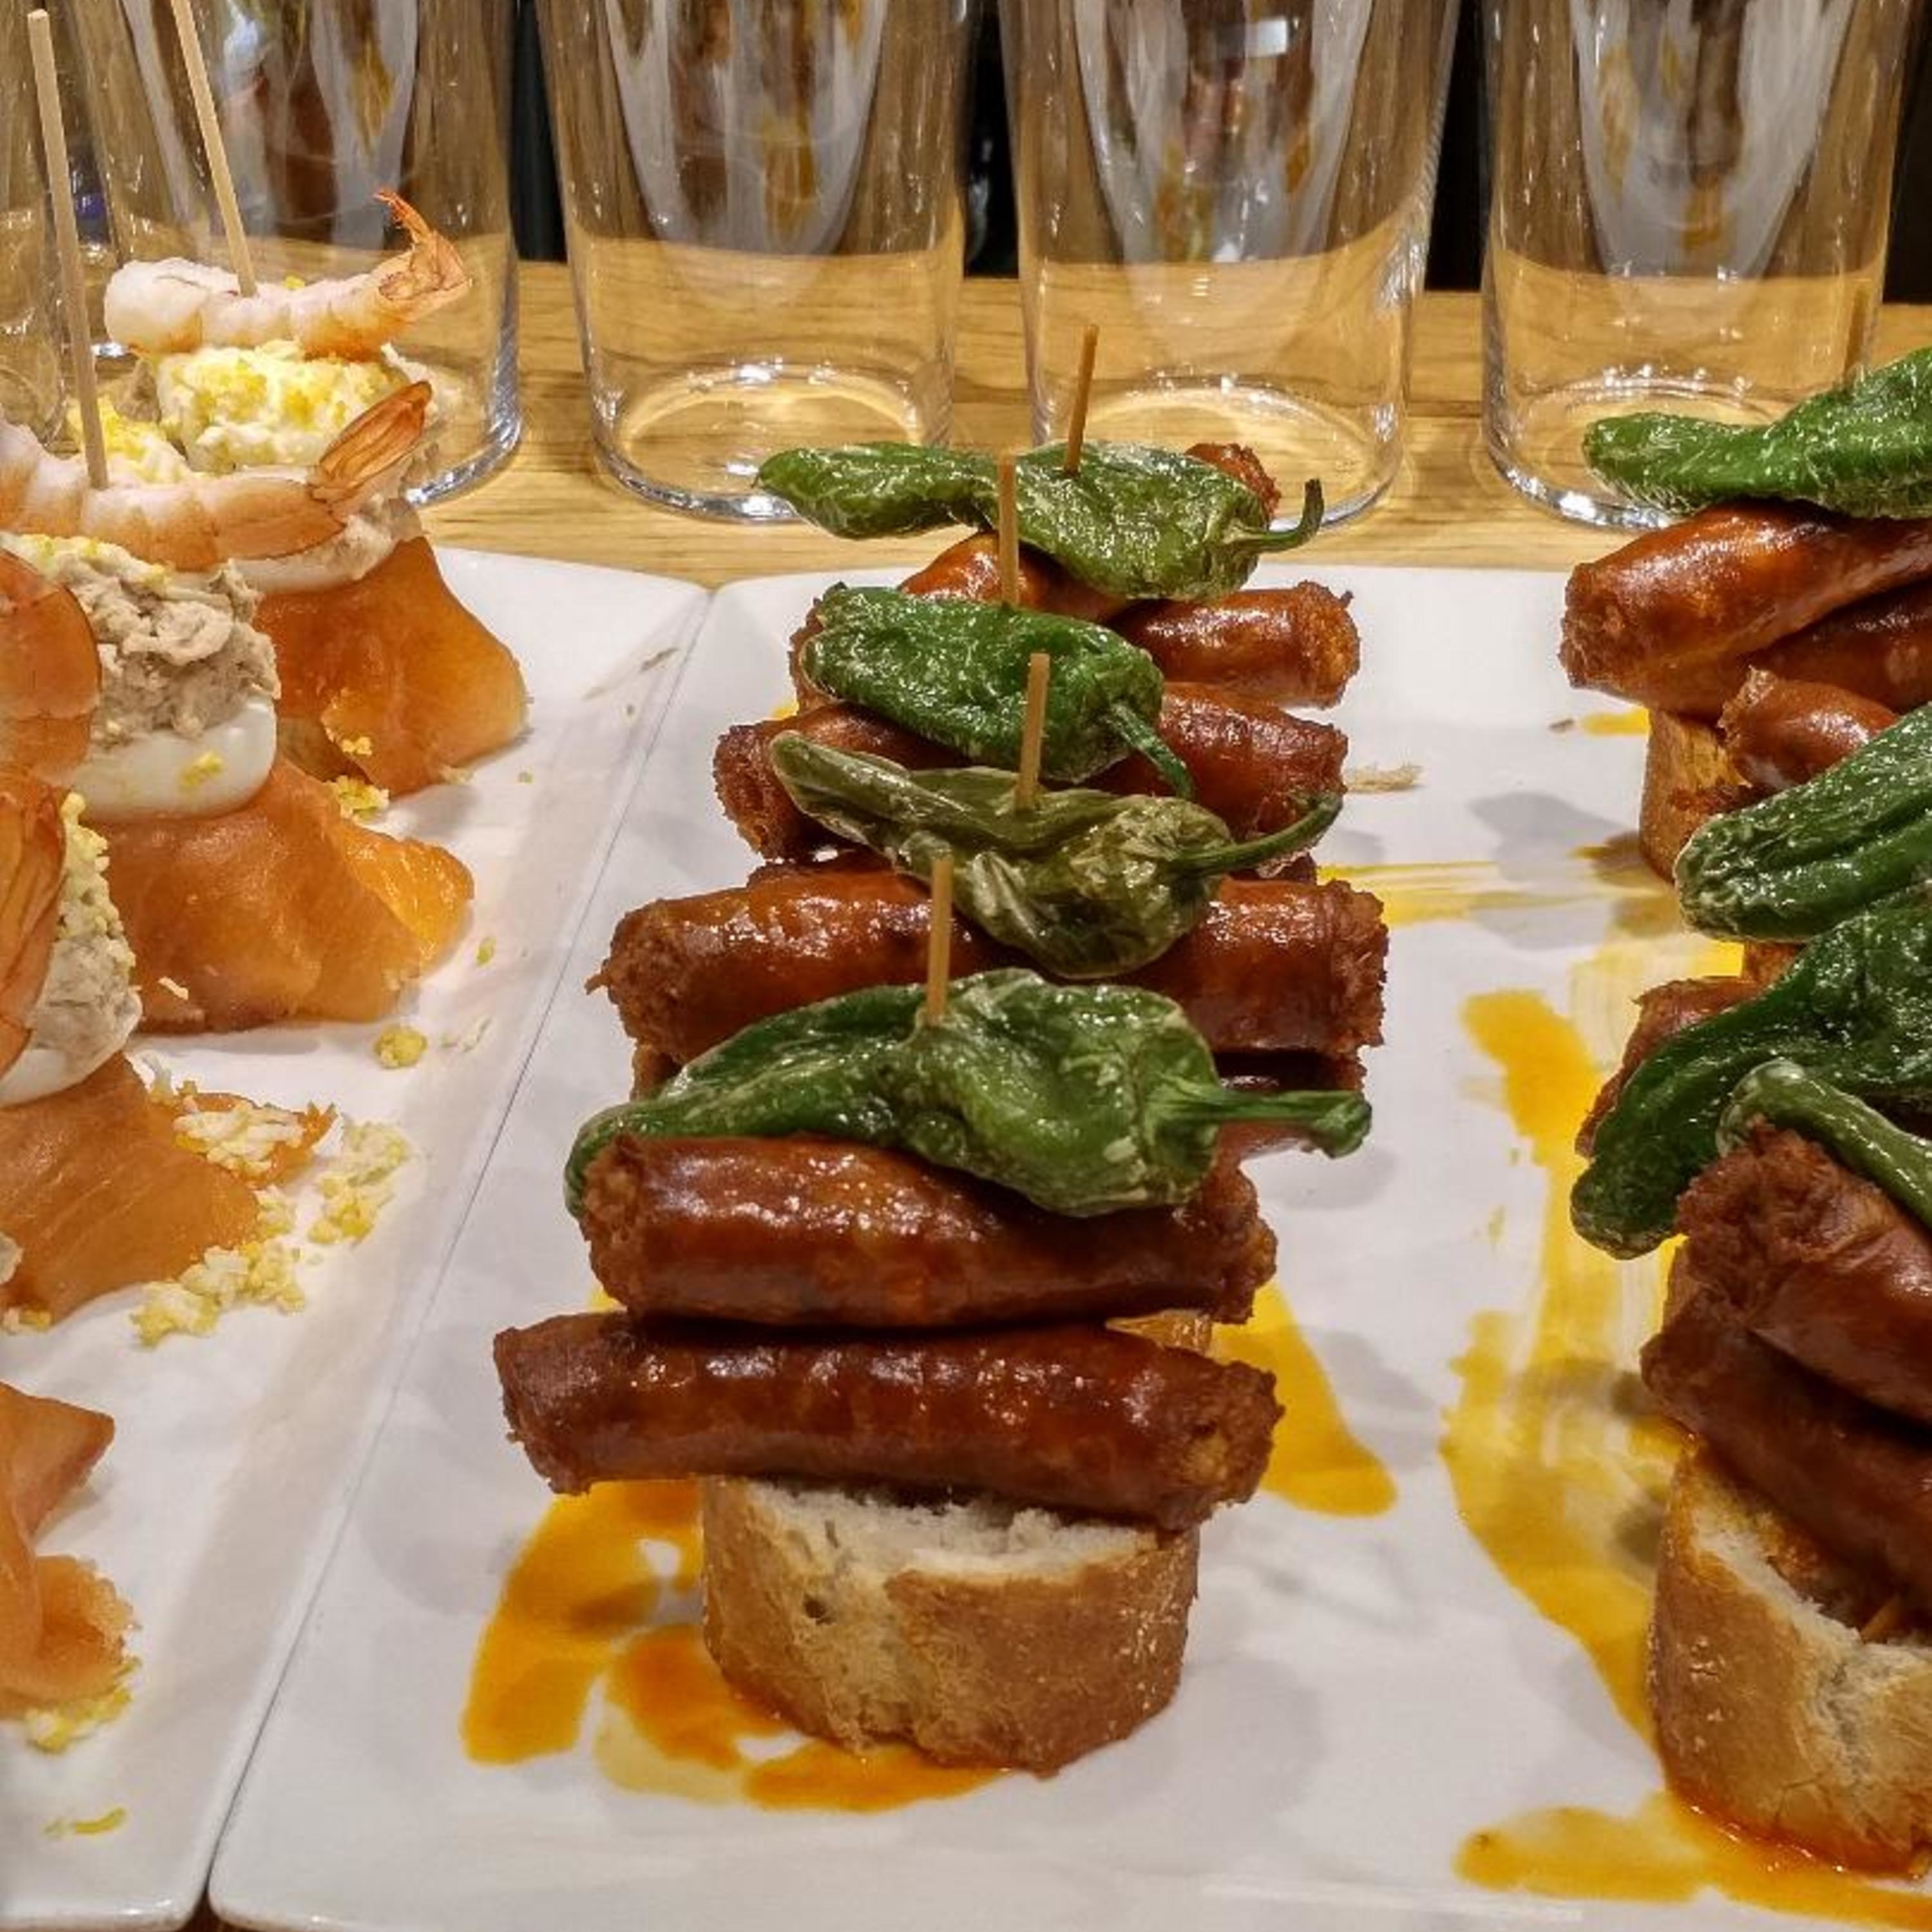 Episode 325: Pintxos and Food of the Basque Country